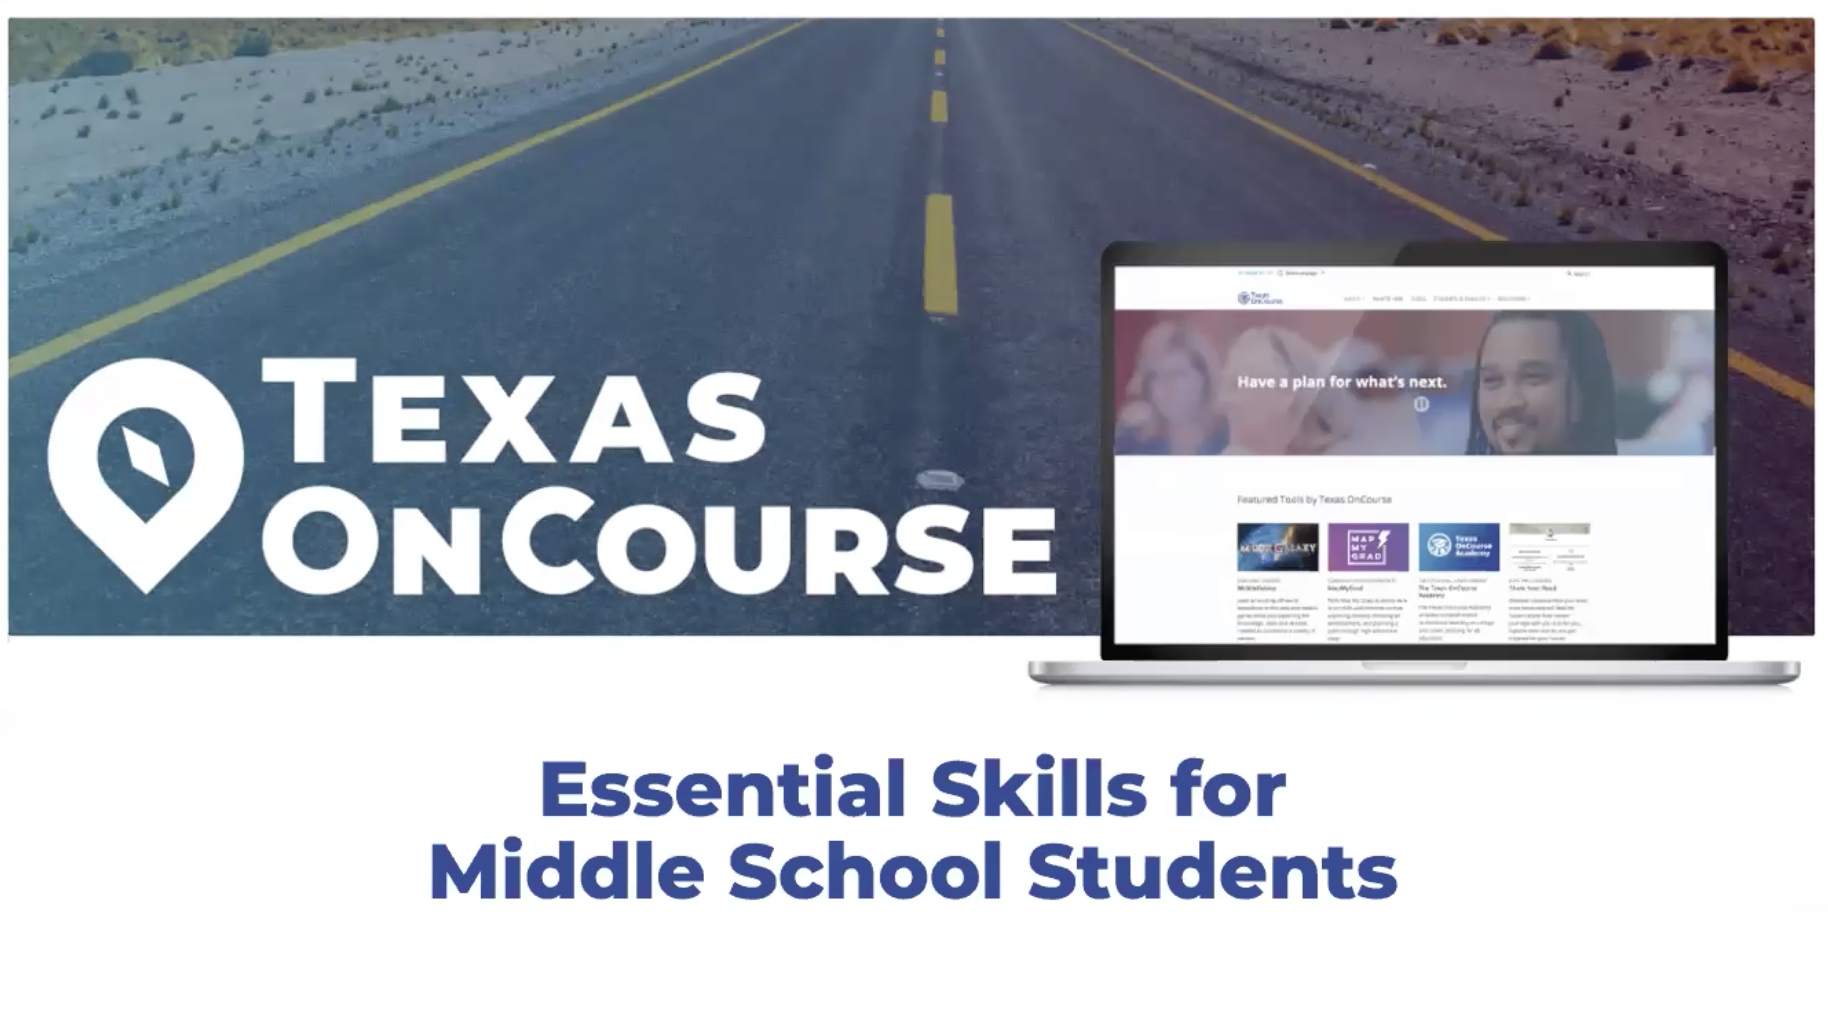 Essential Skills for Middle School Students